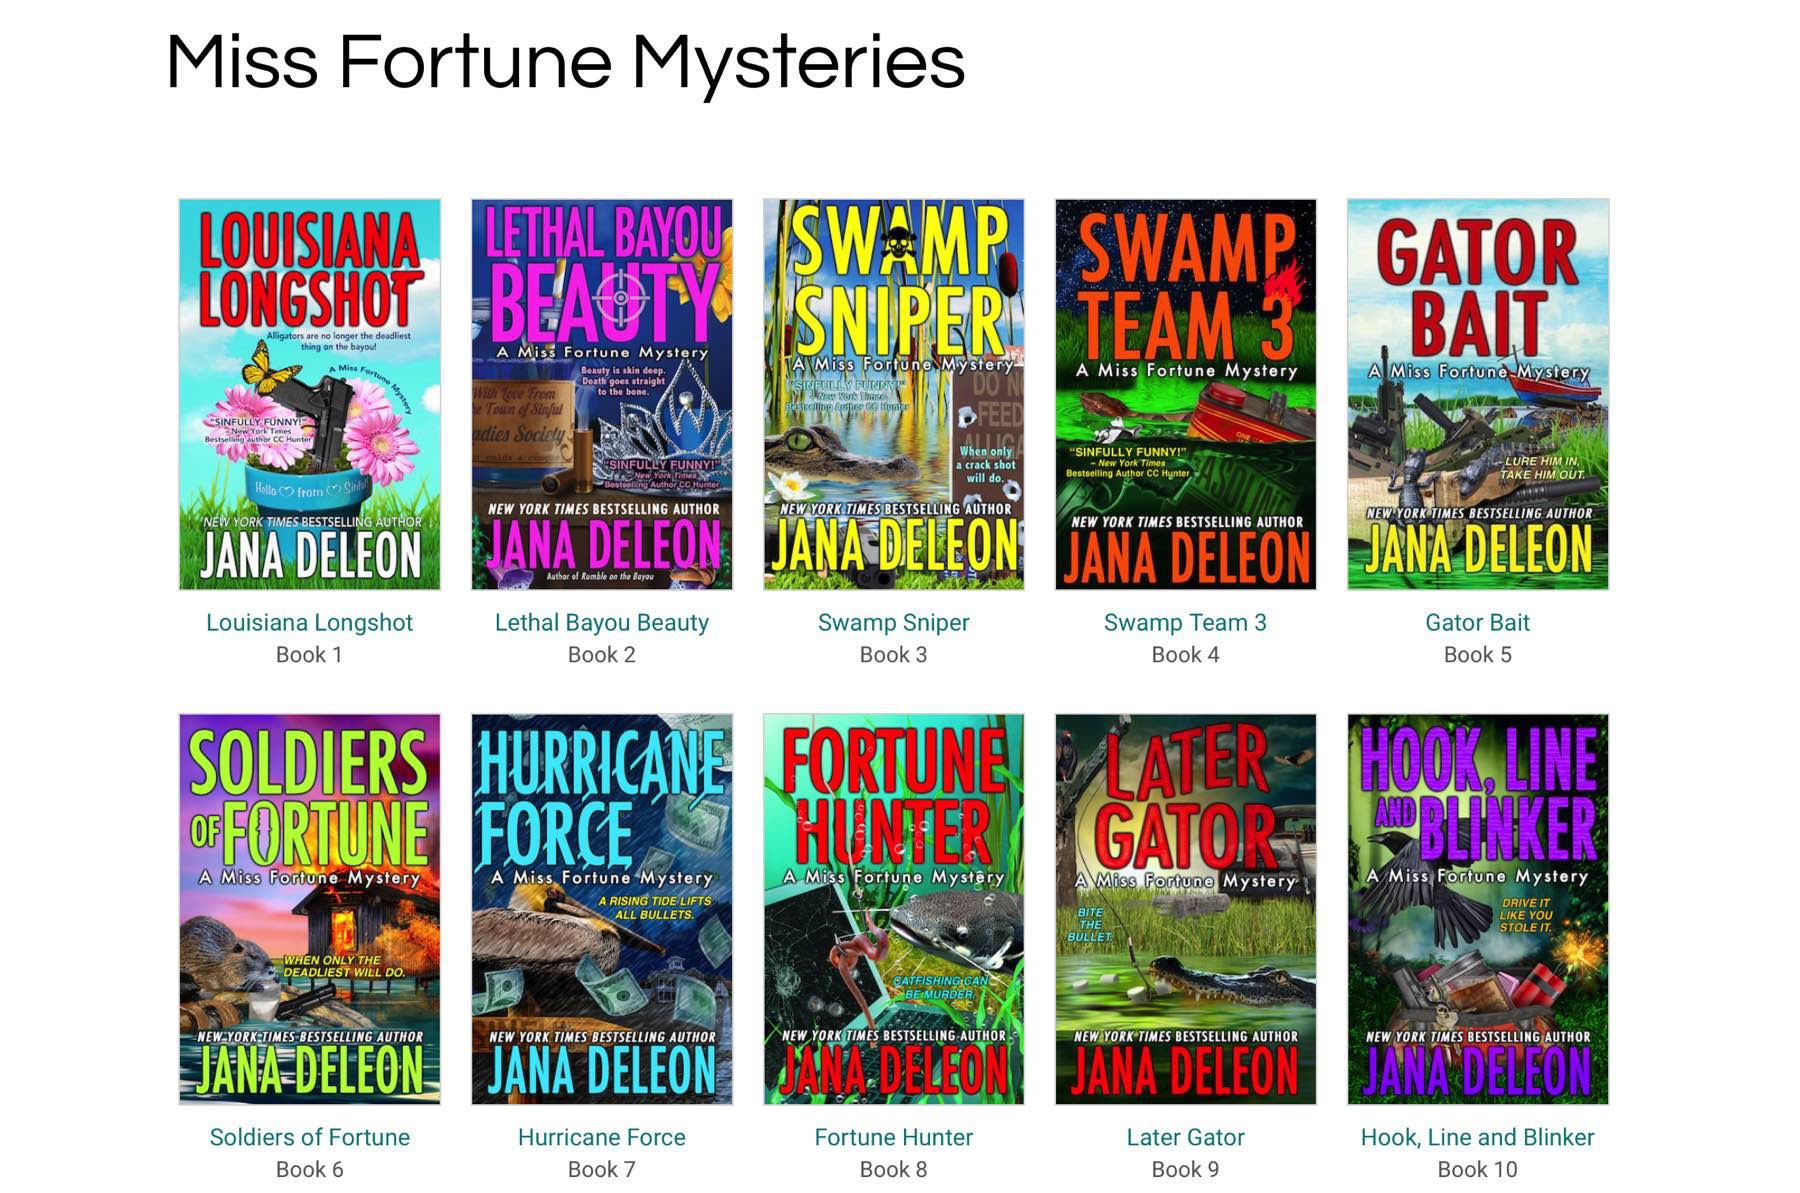 Miss Fortune Mysteries, screenshot of 10 book covers.